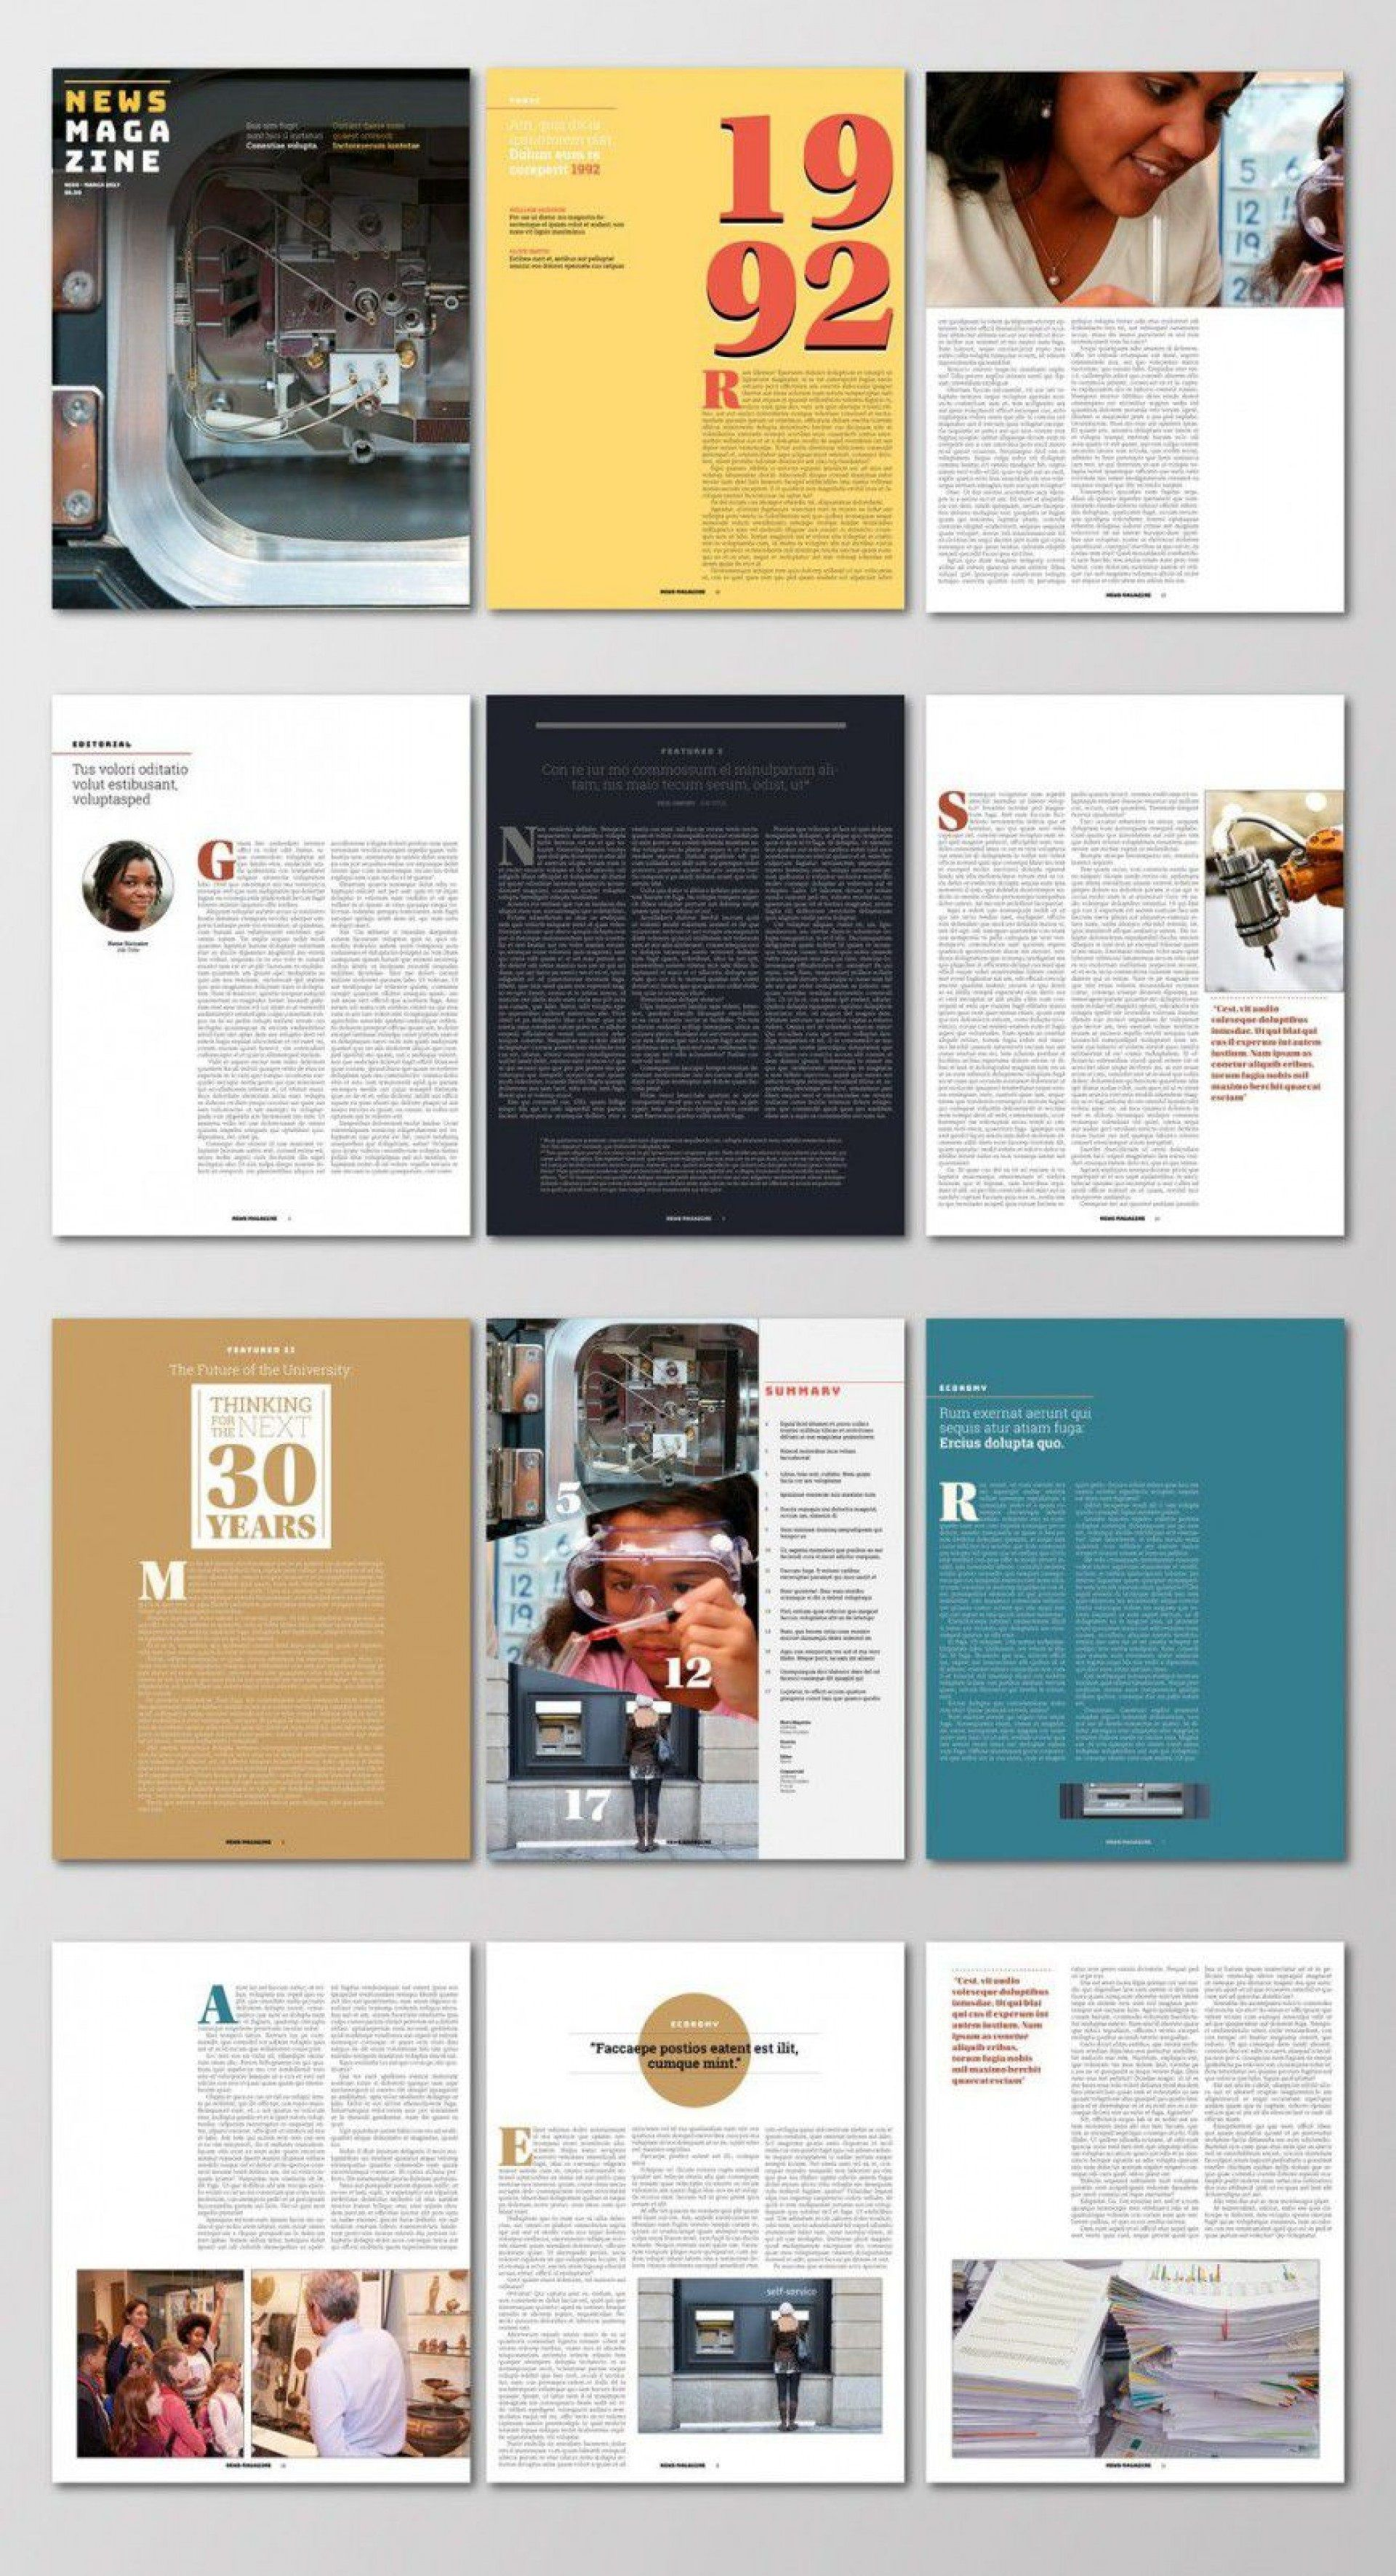 001 Remarkable School Magazine Layout Template Free Download Highest Quality Full